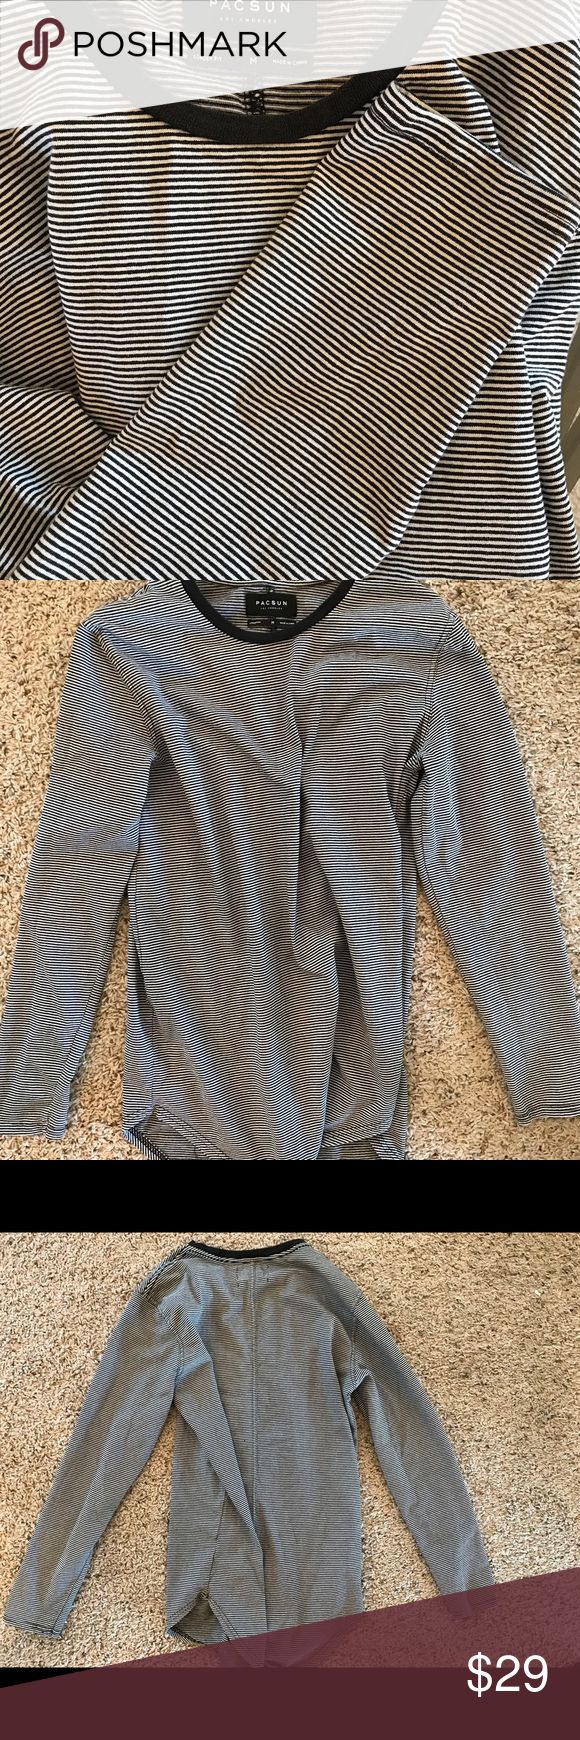 PACSUN long fit T womens medium Prerfect condition, Pacific Sunwear long fit. Small black and white stripes. Women's medium. Long sleeves Pacific Sunwear Tops Tees - Long Sleeve